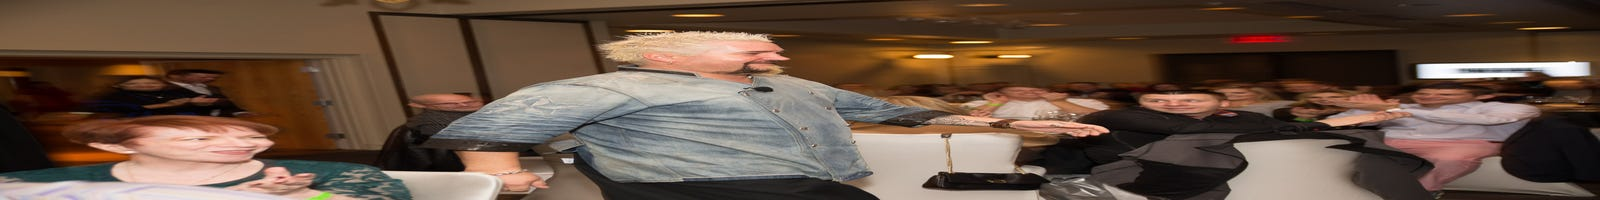 Guy Fieri's Lunch & Learn event in Paradise Valley